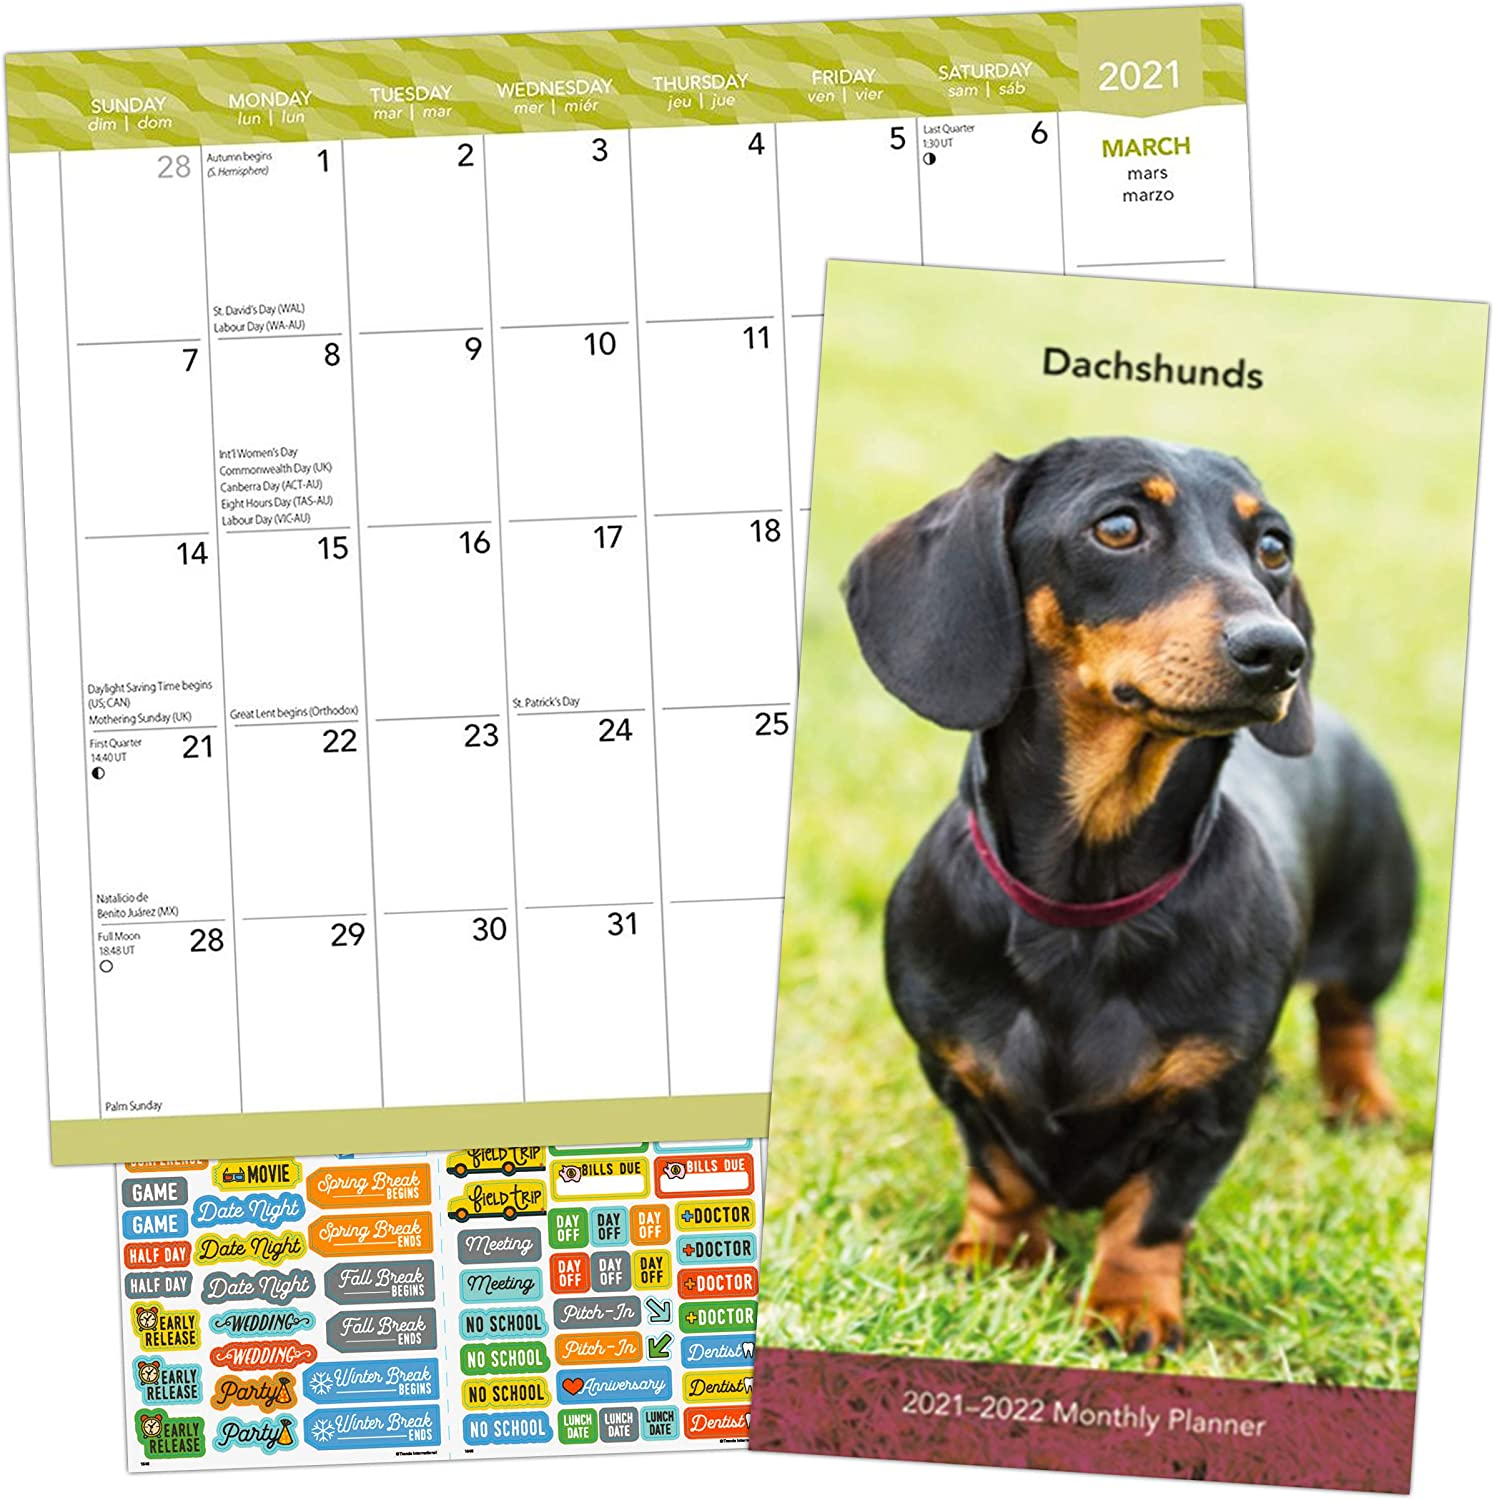 Dachshunds Calendar 2021 Bundle - Deluxe 2021 Wiener Dogs Pocket Planner Calendar with Over 100 Calendar Stickers (Dachshund Gifts, Office Supplies)